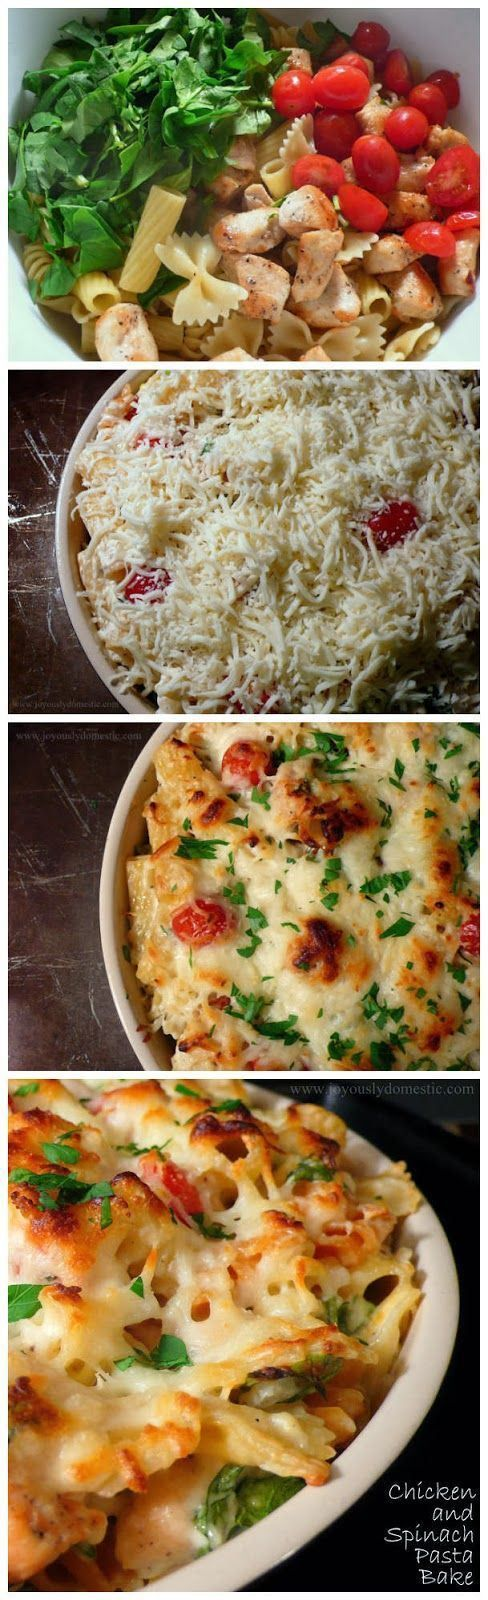 Chicken and Spinach Pasta Bake   The Women's Lounge